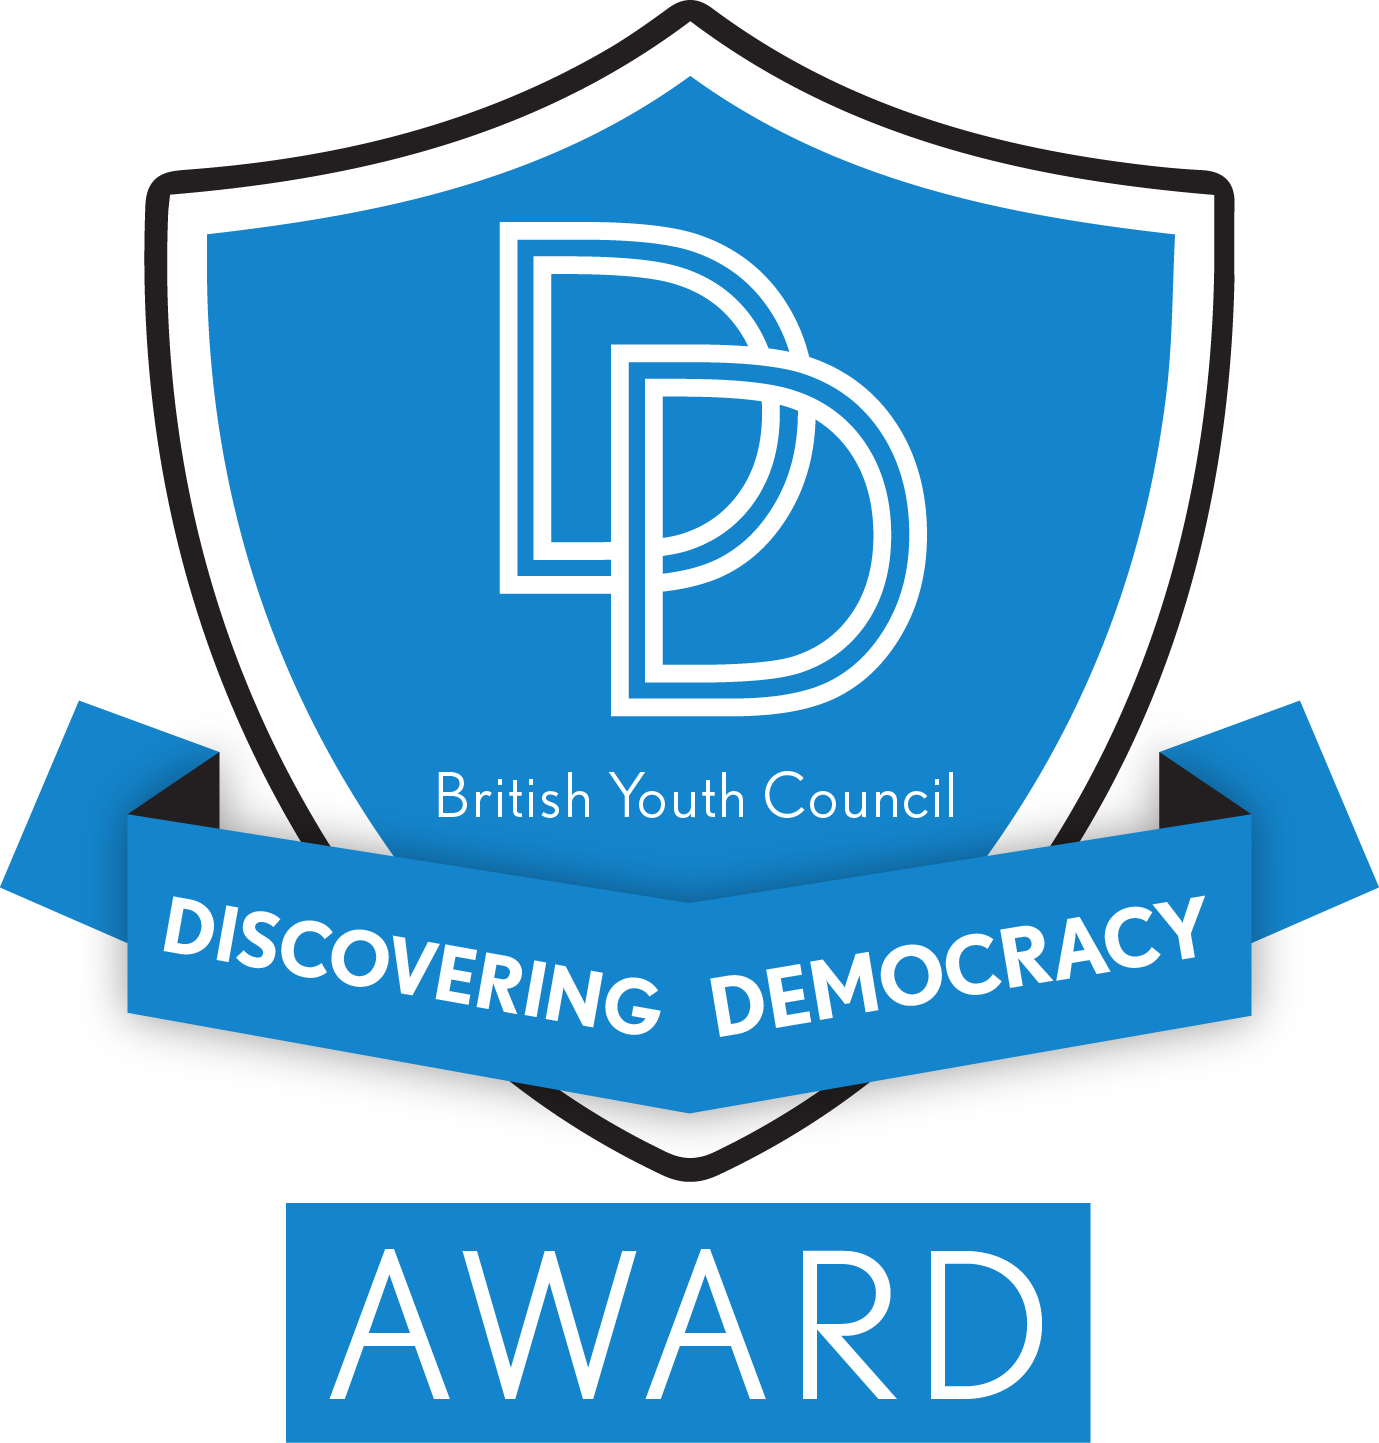 jcoss democracy award given by the dfe